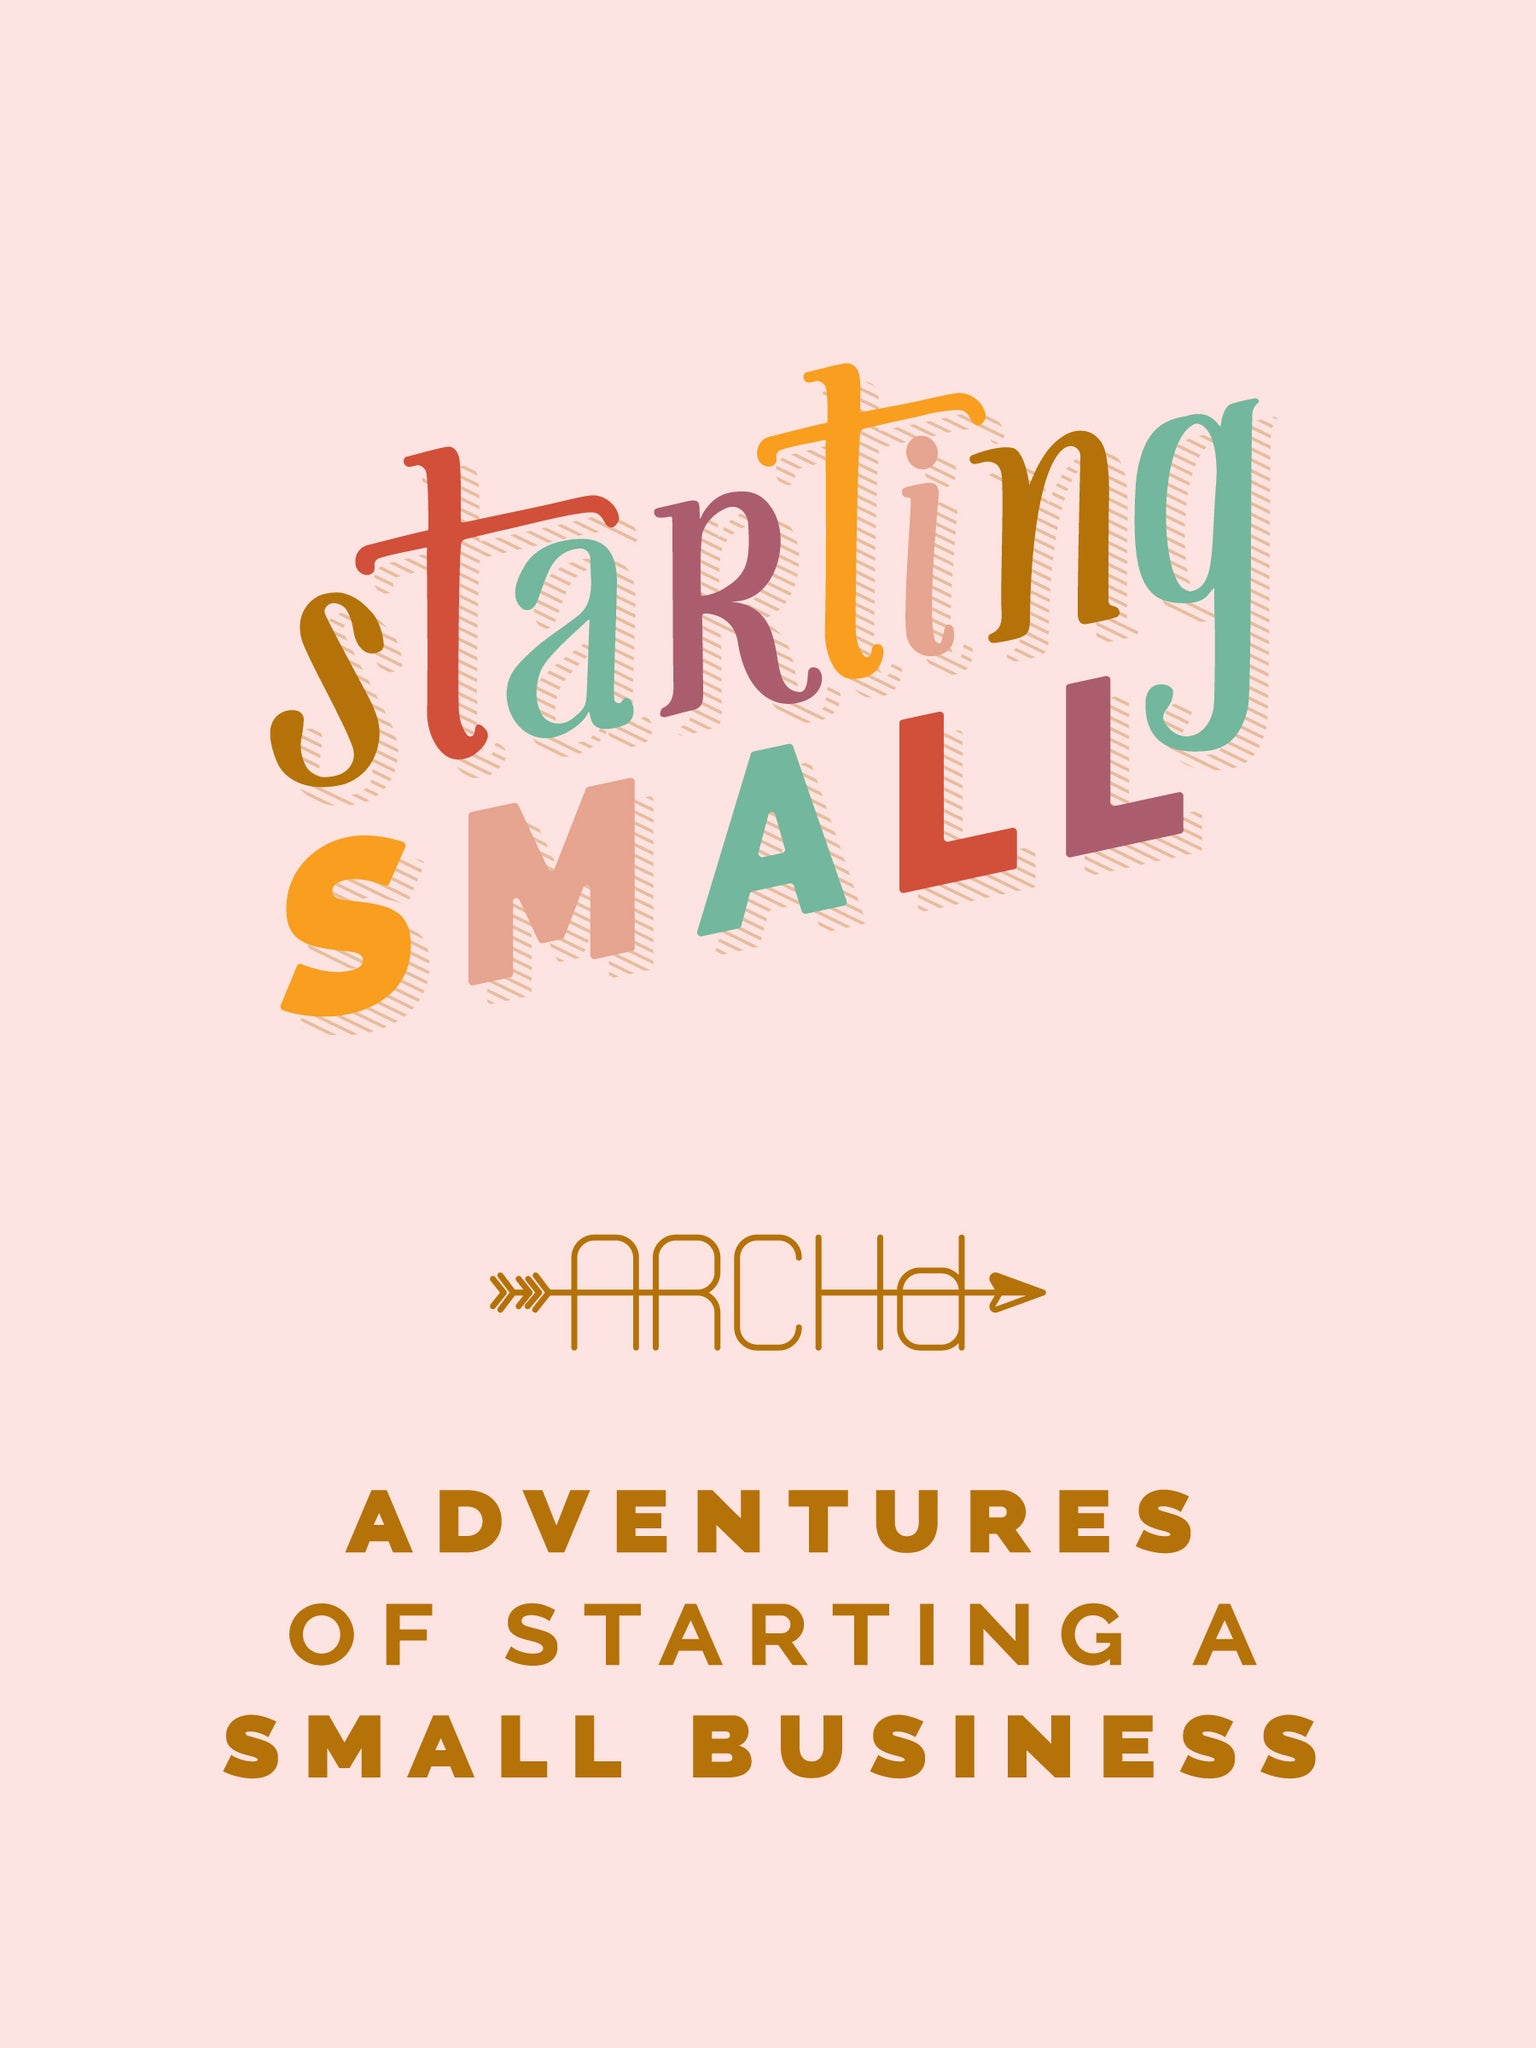 Starting Small Adventures of Starting a Small Business